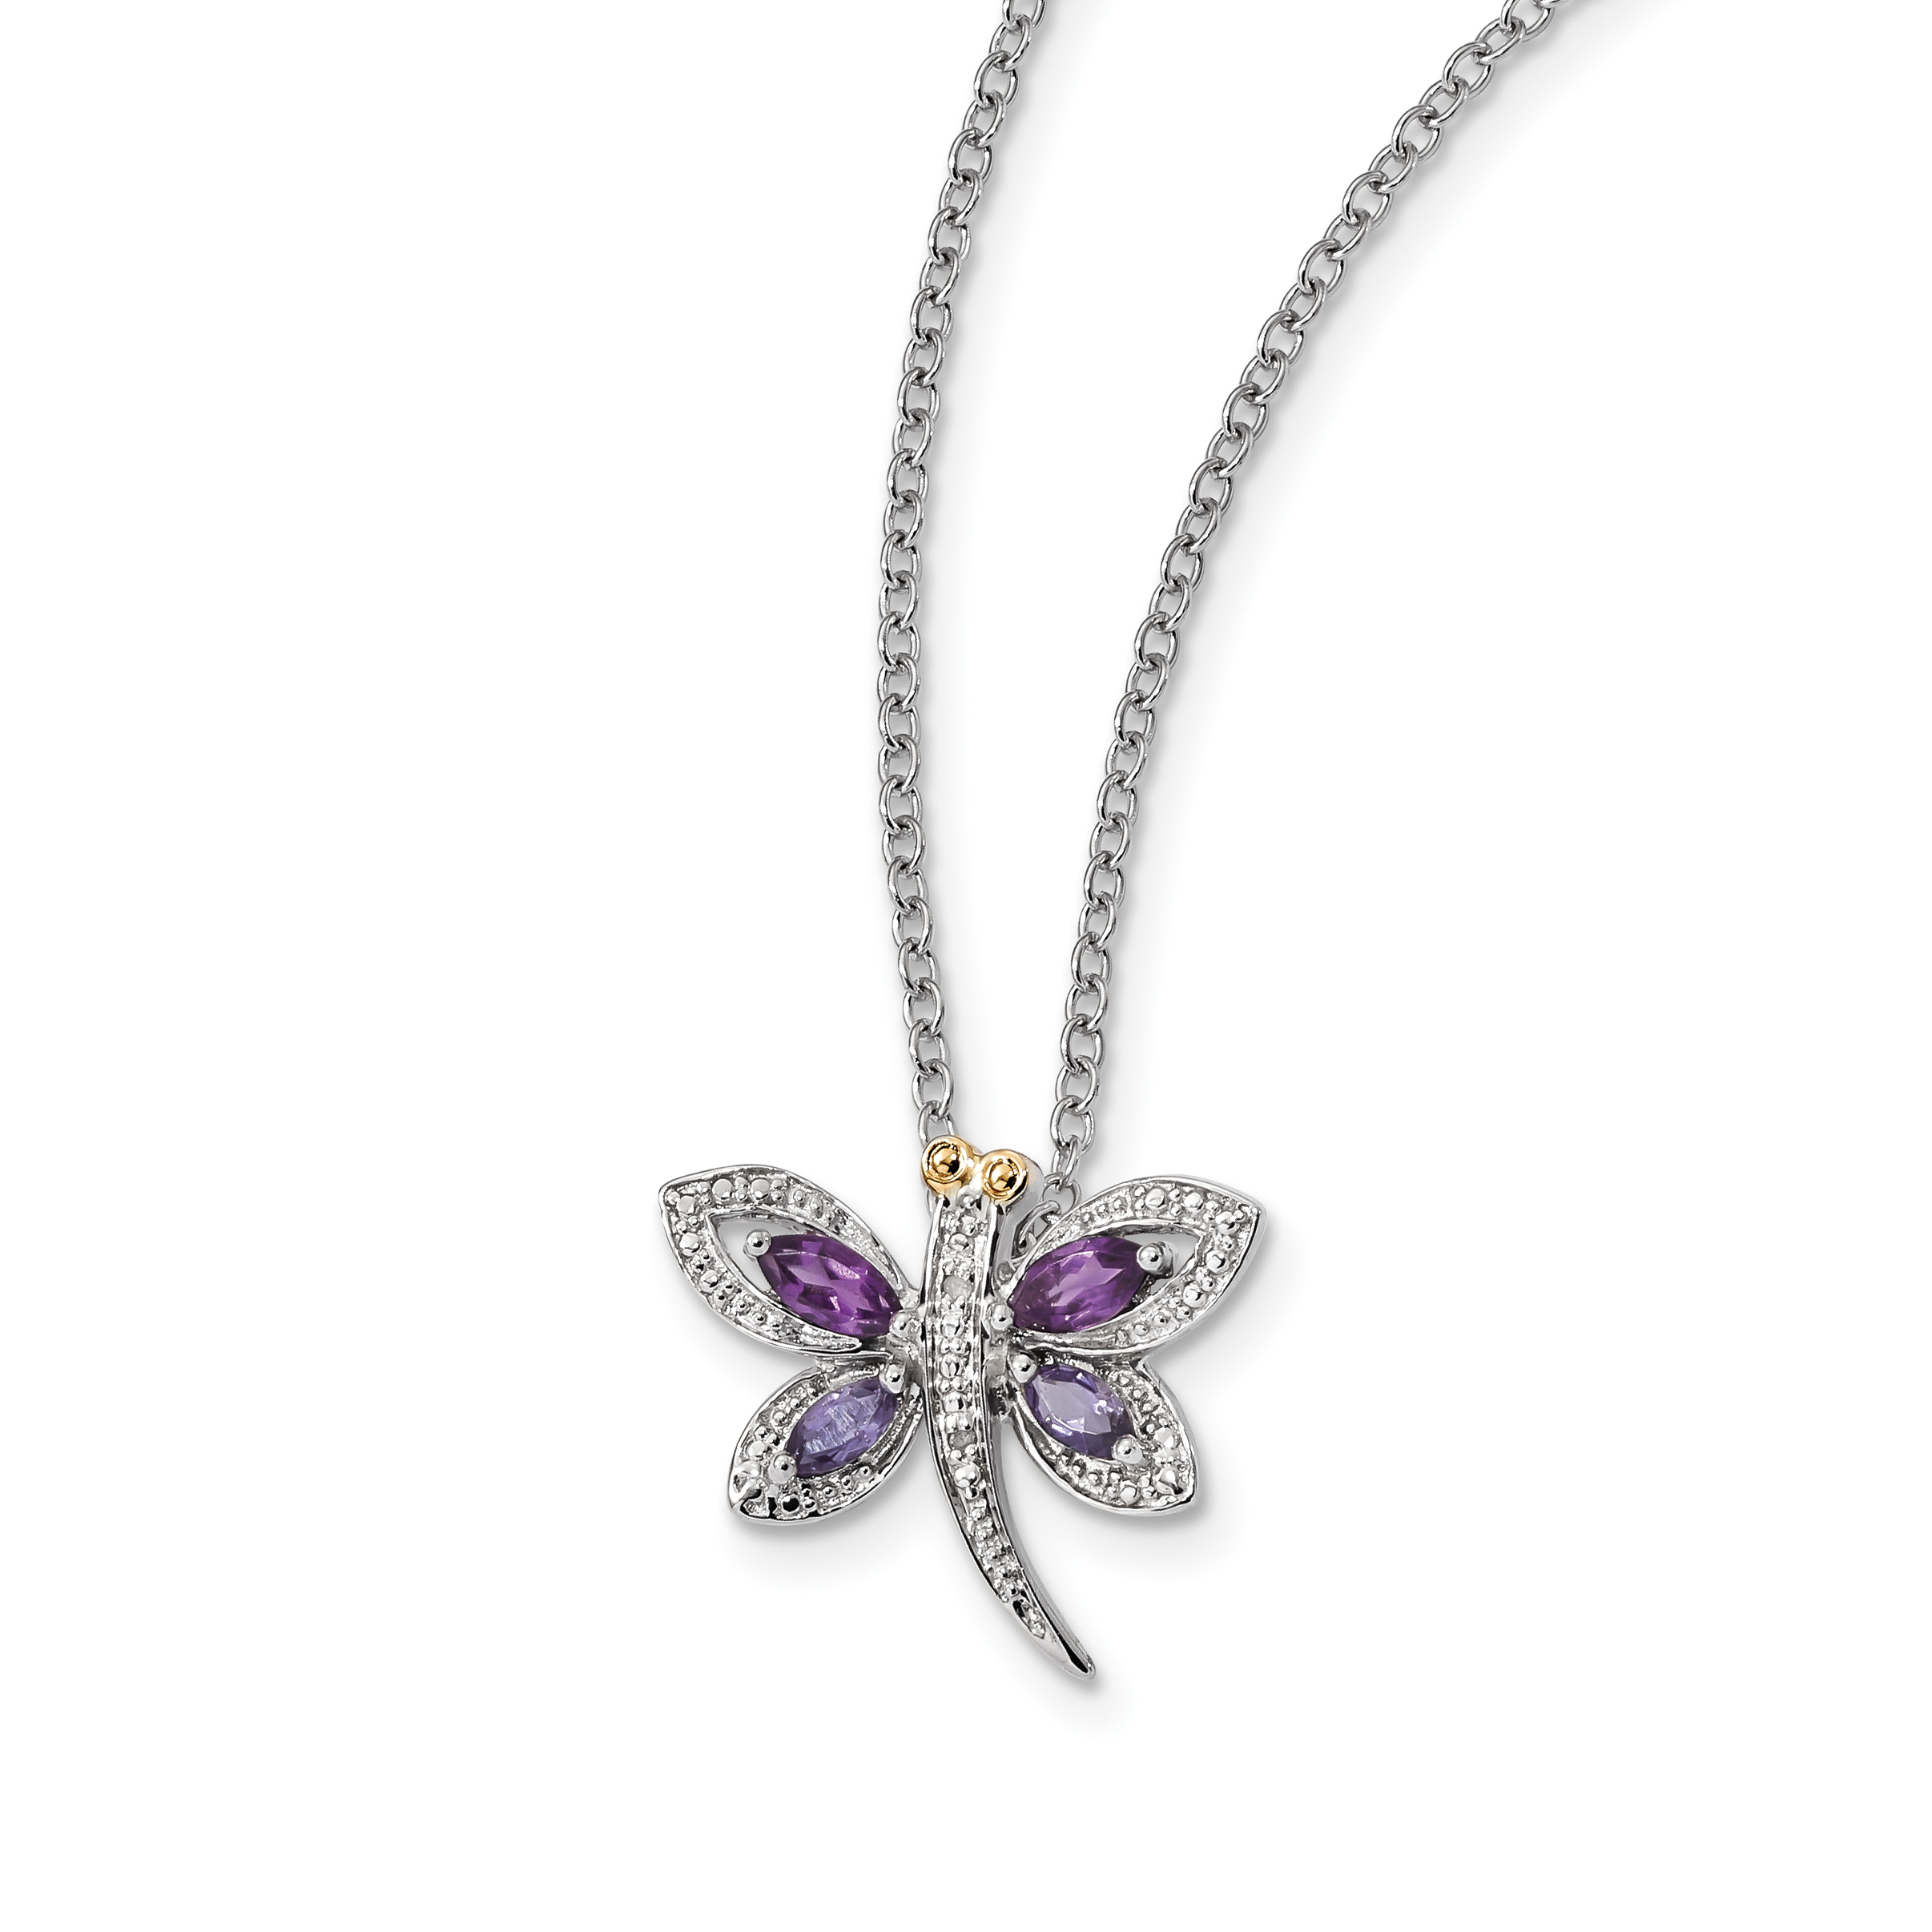 Sterling Silver Sterling Silver & Amethyst and Iolite and Diamond Dragonfly Necklace 17 Inch by Saris and Things QG